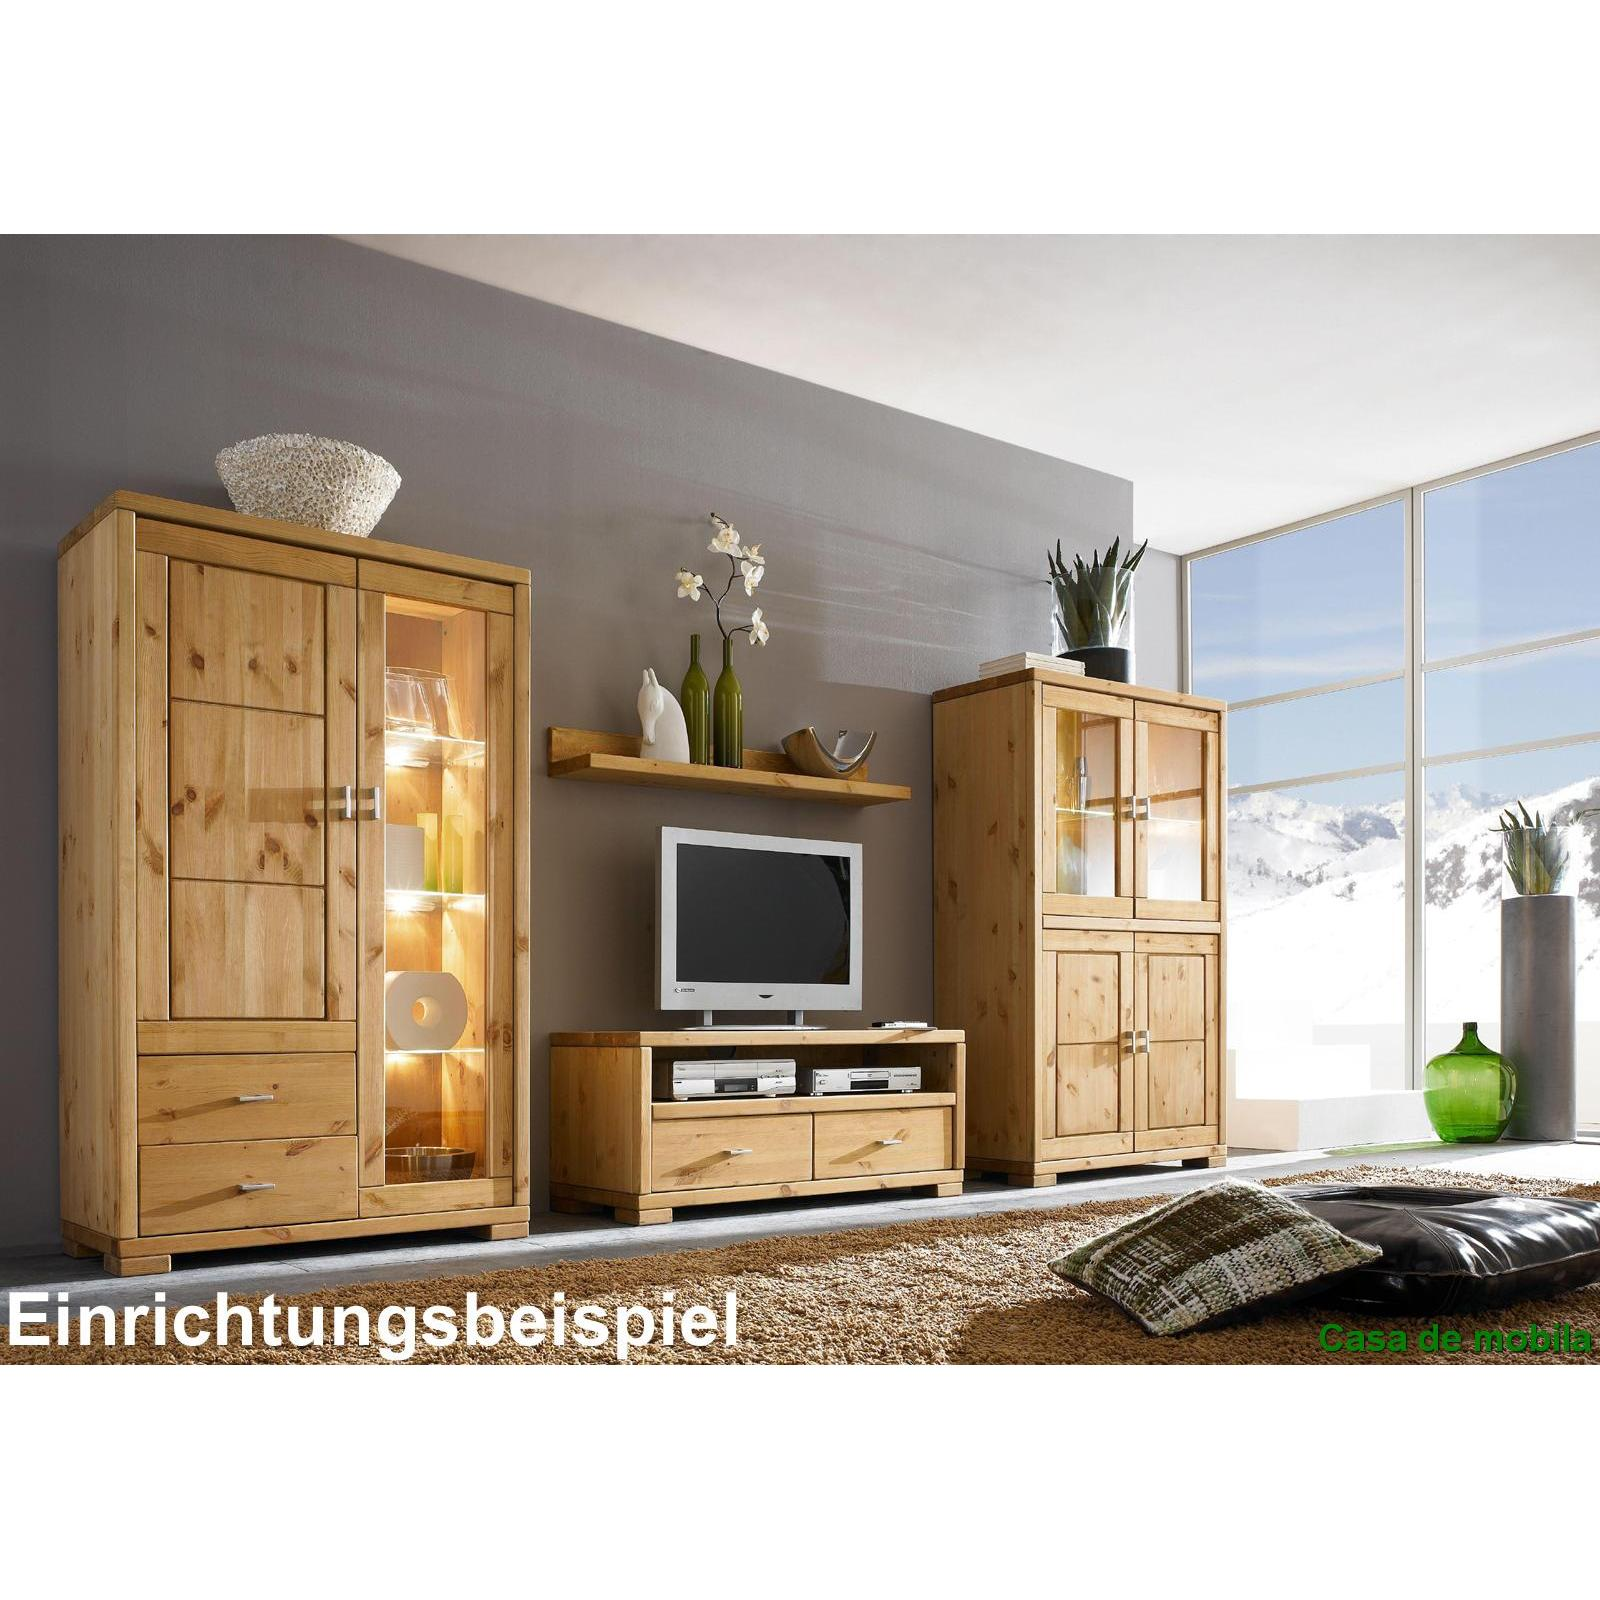 massivholz vitrinenschrank kiefer massiv wei lasiert vitrine guldborg. Black Bedroom Furniture Sets. Home Design Ideas